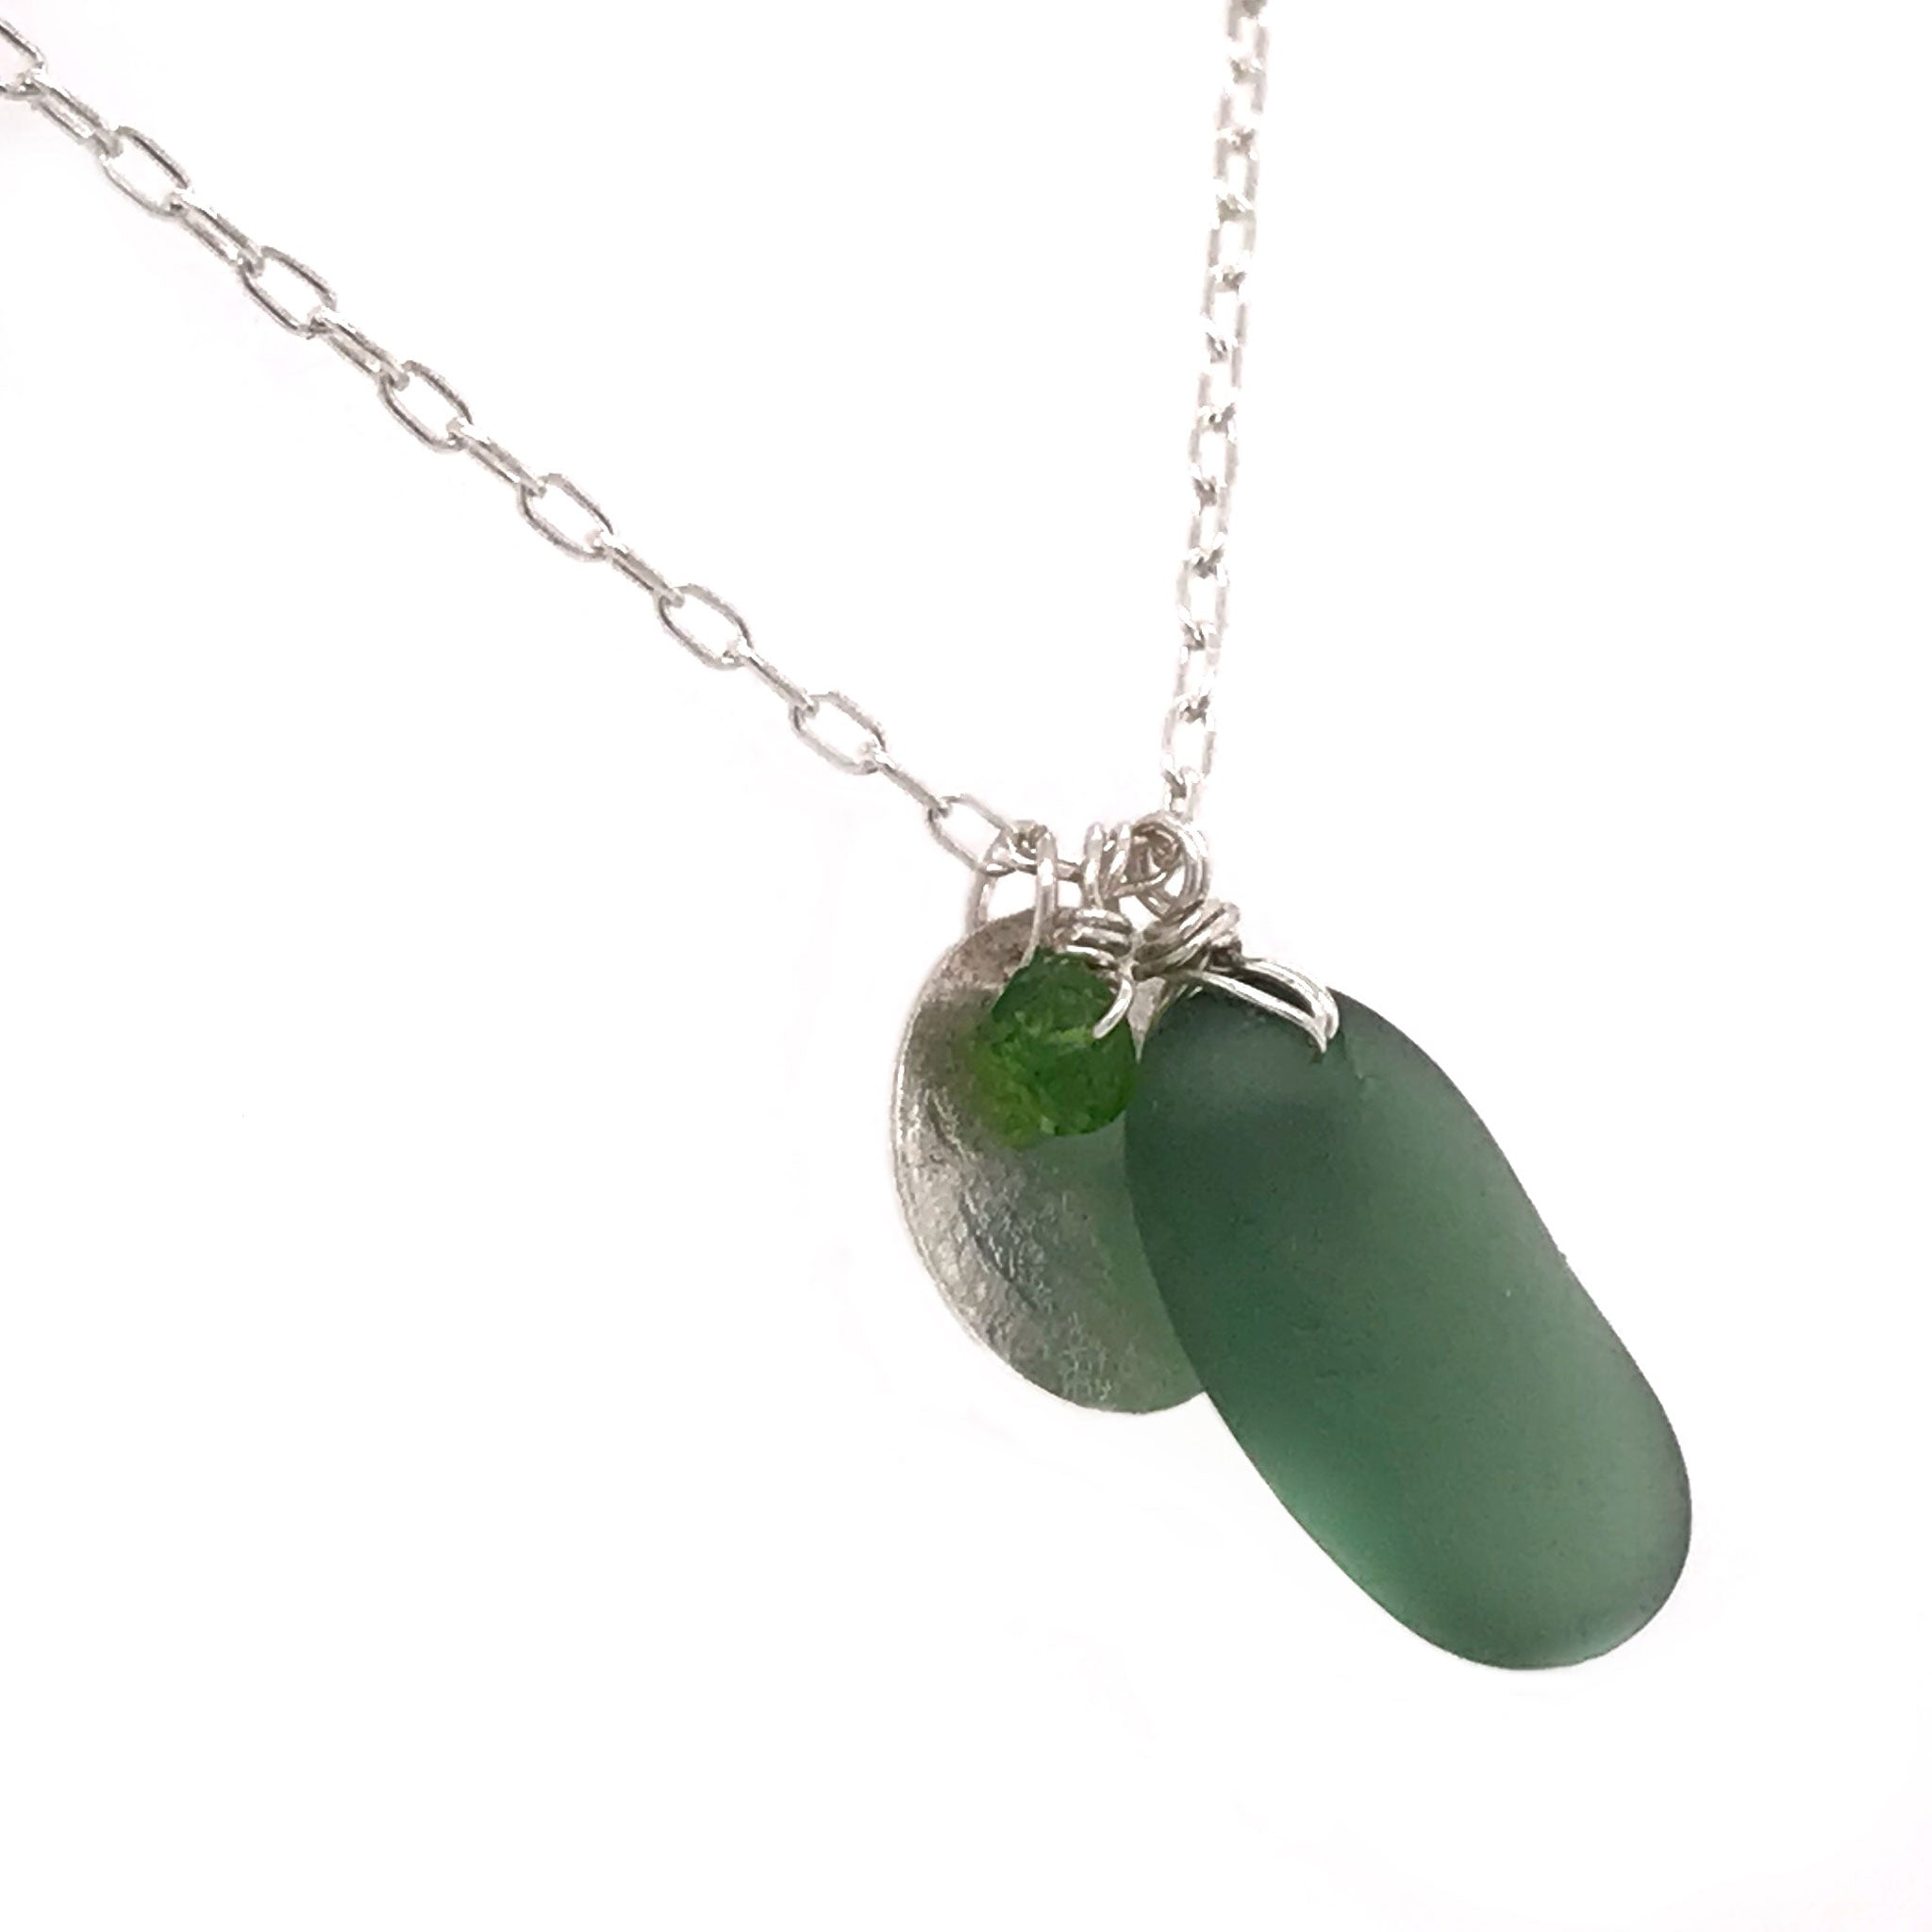 green seaglass charm necklace with silver disc and tsavorite stones kriket broadhurst jewellery